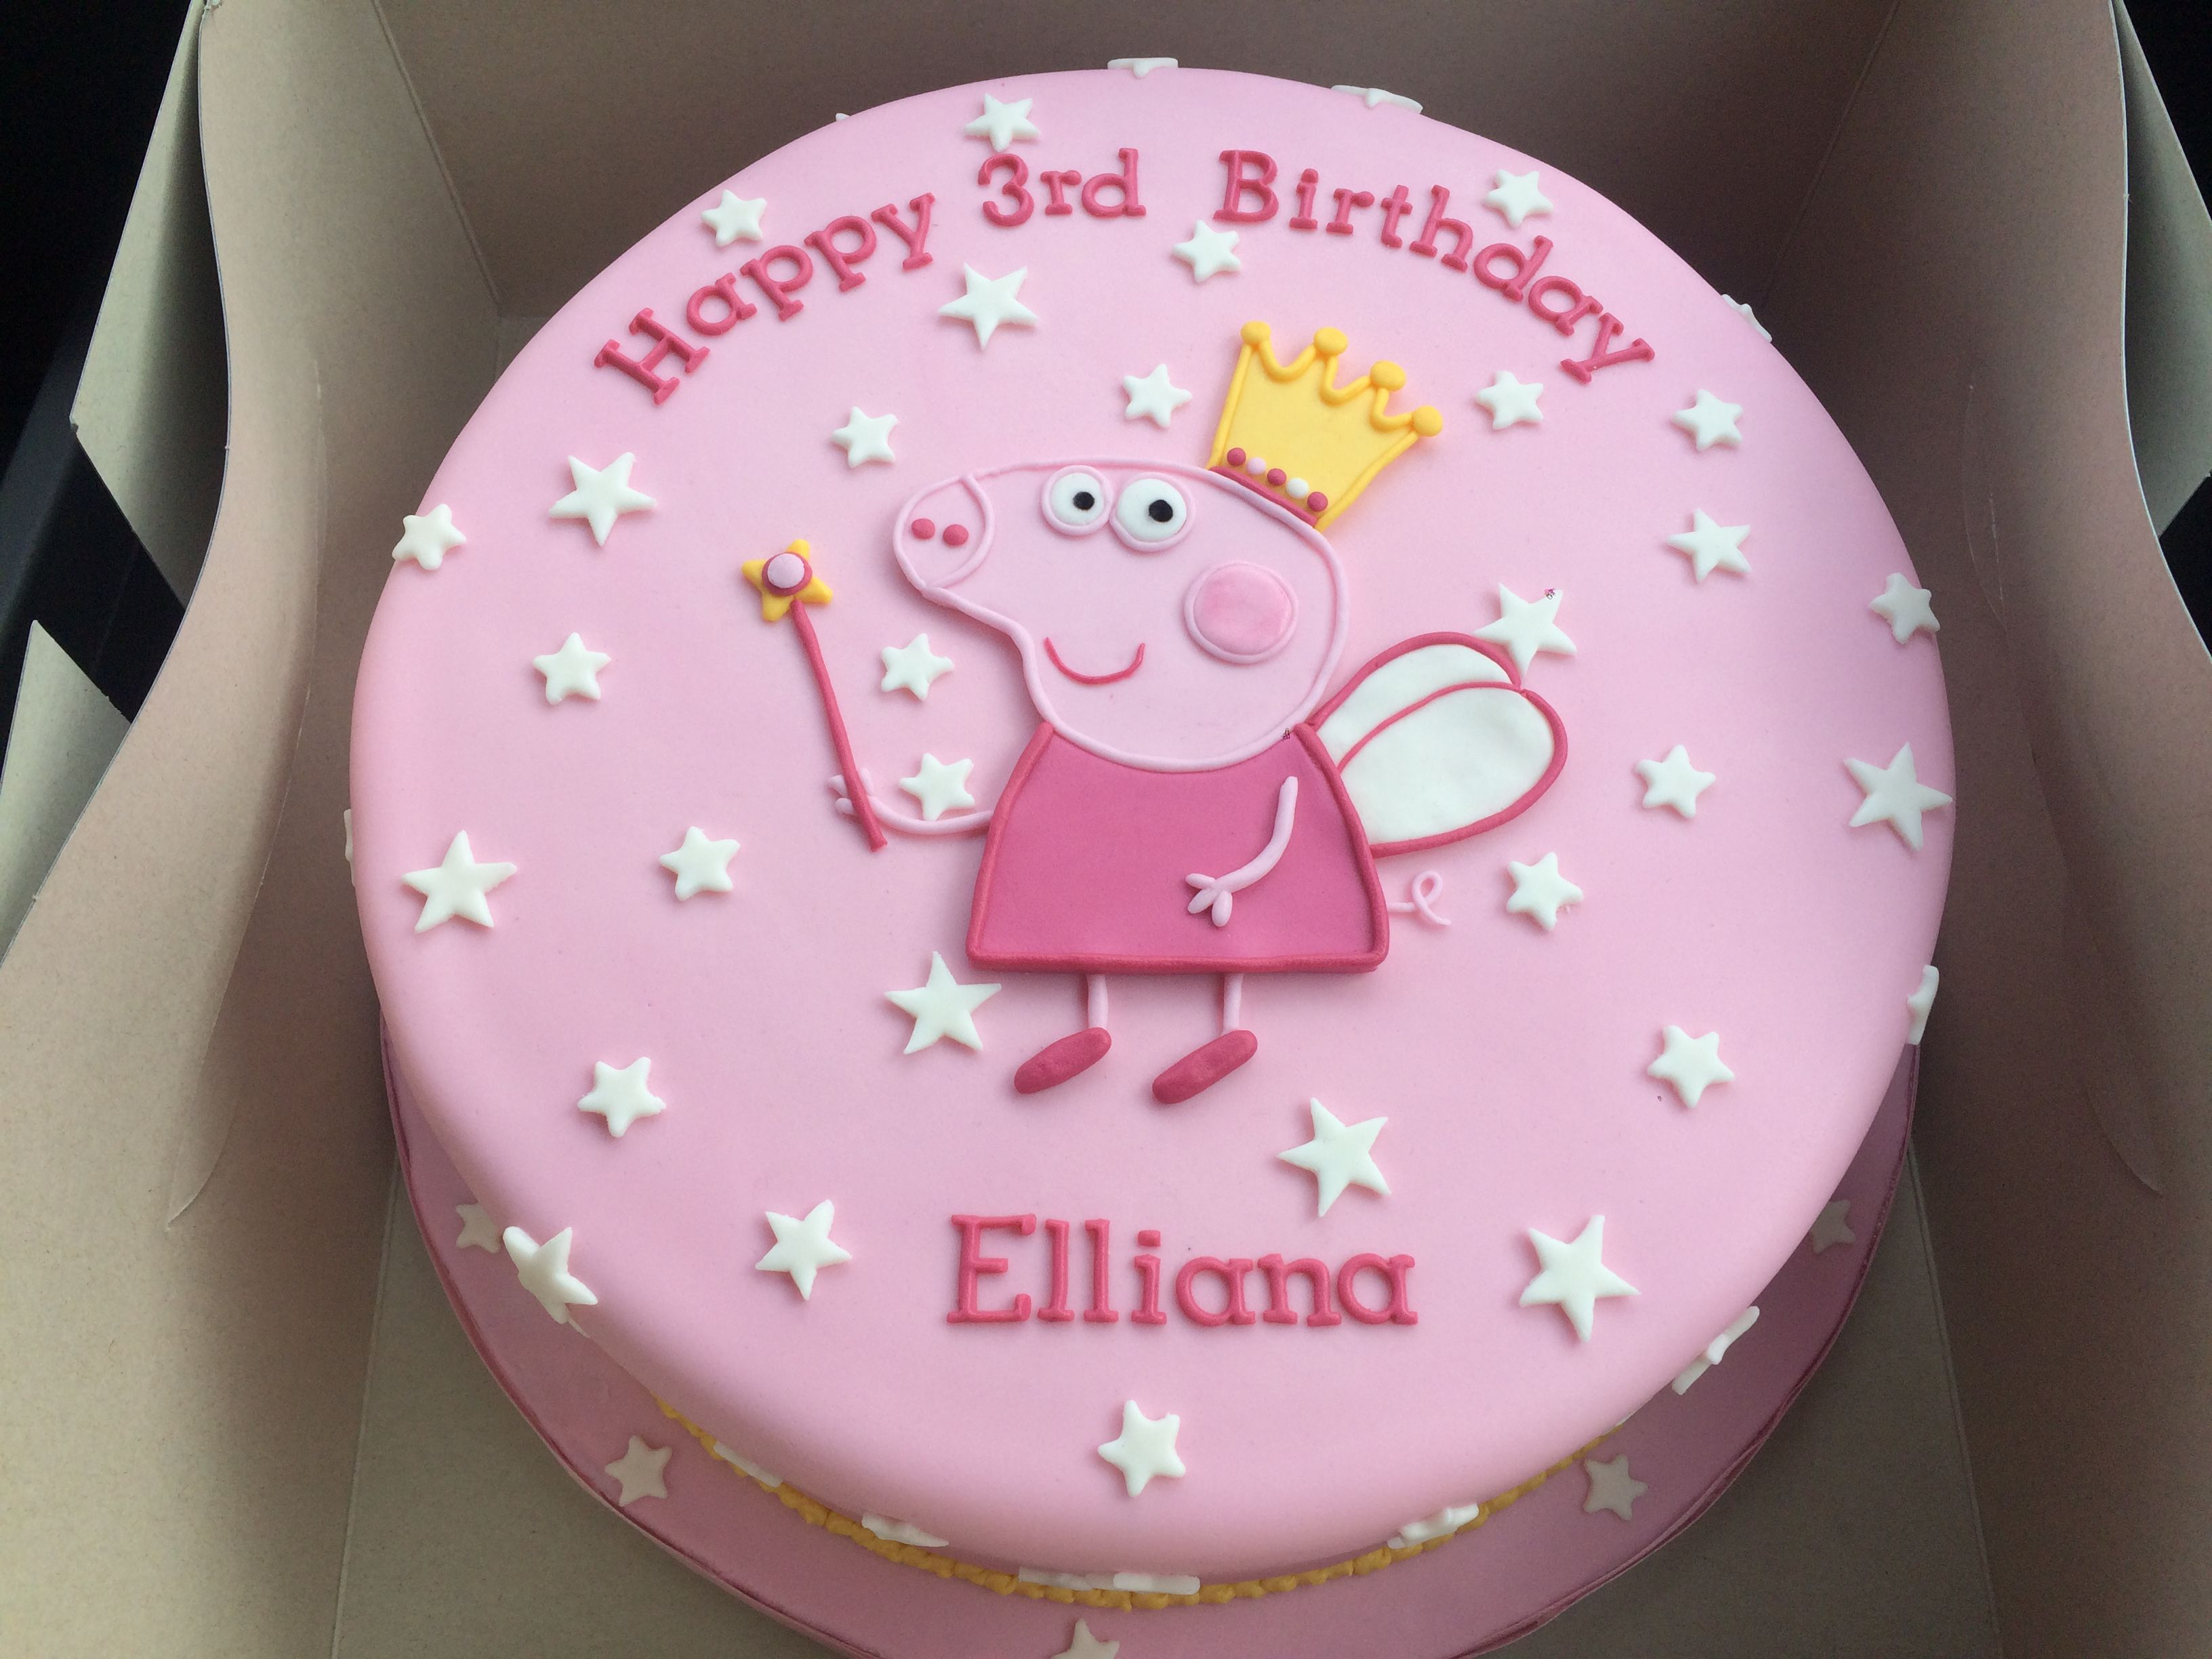 Peppa Pig Princess Theme Birthday Cake All Fondant Decorations Made Using A Template And Cut Out With Knife Not My Design Link Attached To Where